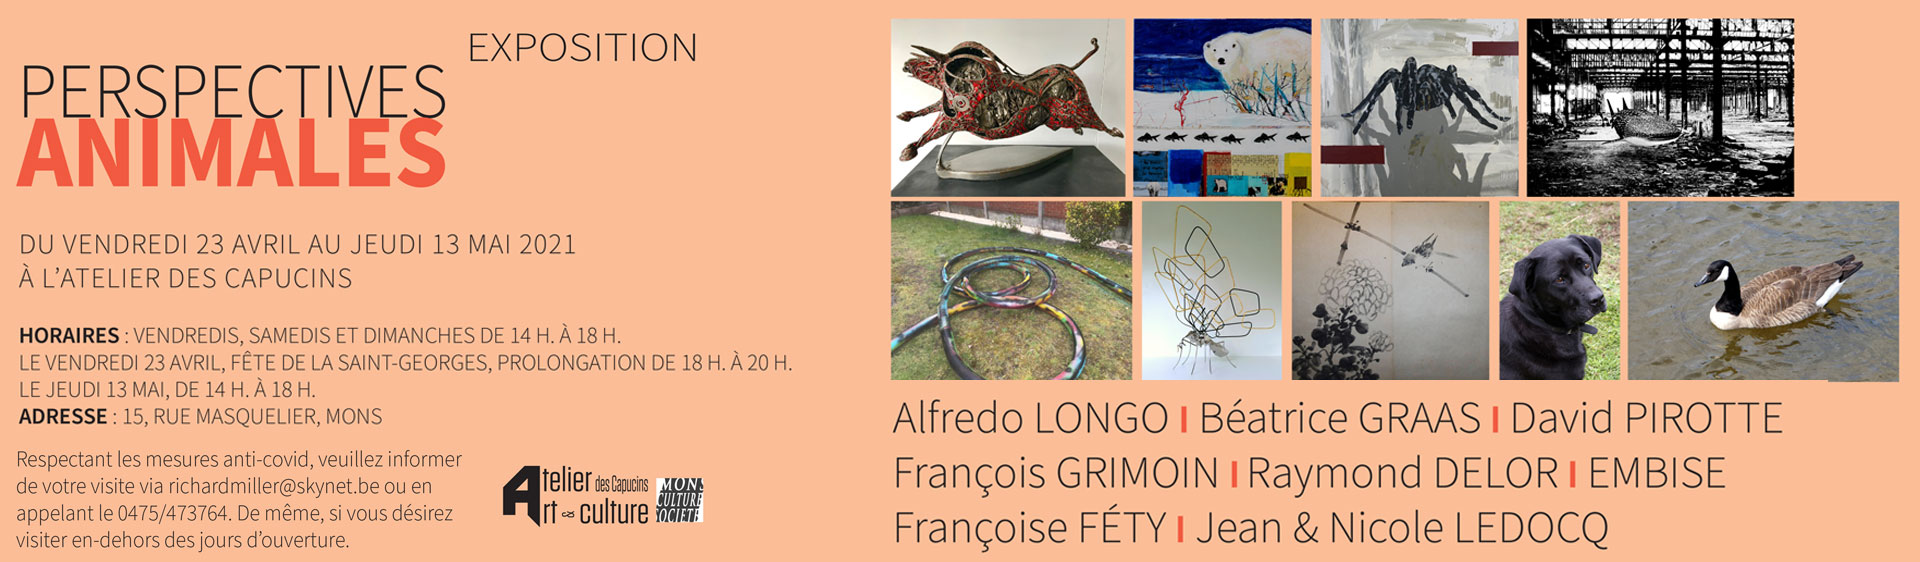 Exposition Perspectives animales